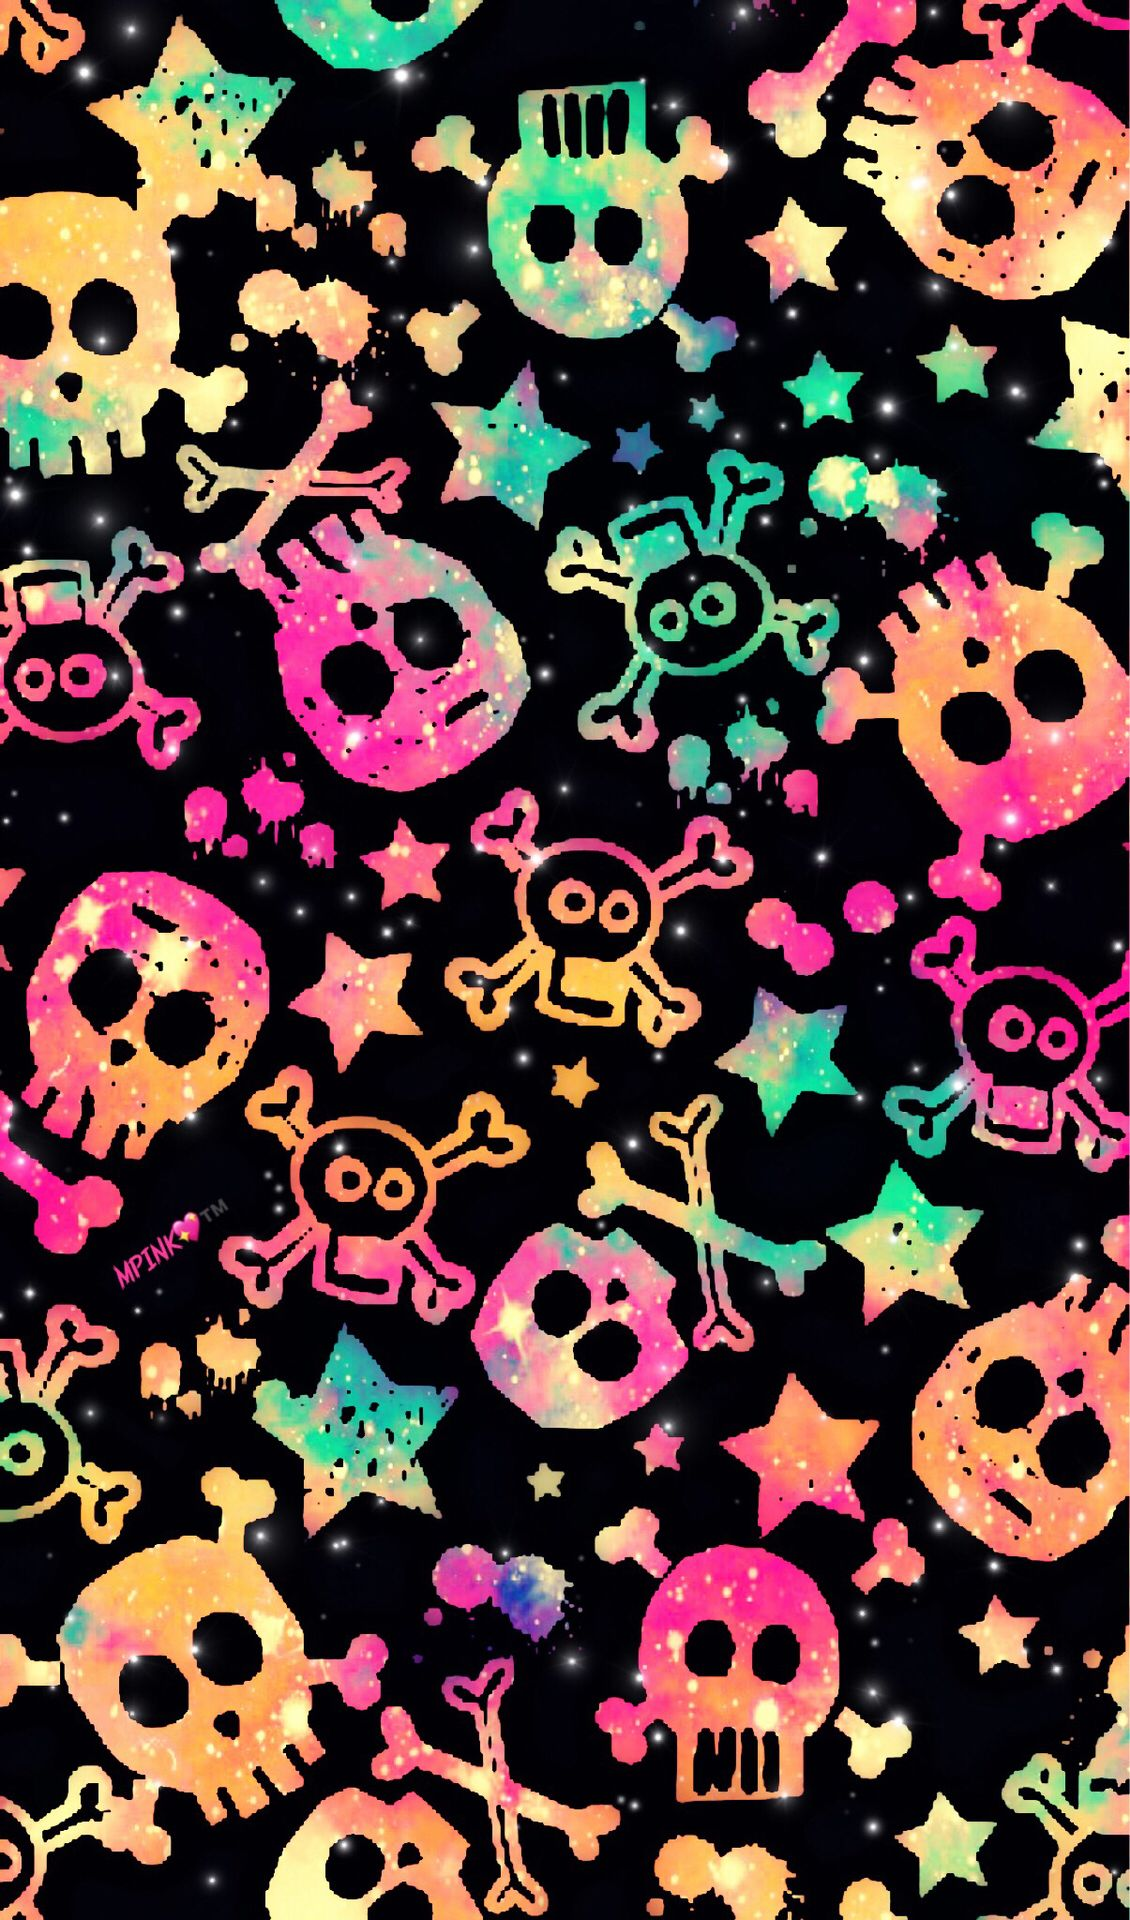 Punk Rock Galaxy Wallpaper Androidwallpaper Iphonewallpaper Wallpaper Galaxy Sparkle Glitter Lockscreen Skull Wallpaper Neon Wallpaper Galaxy Wallpaper